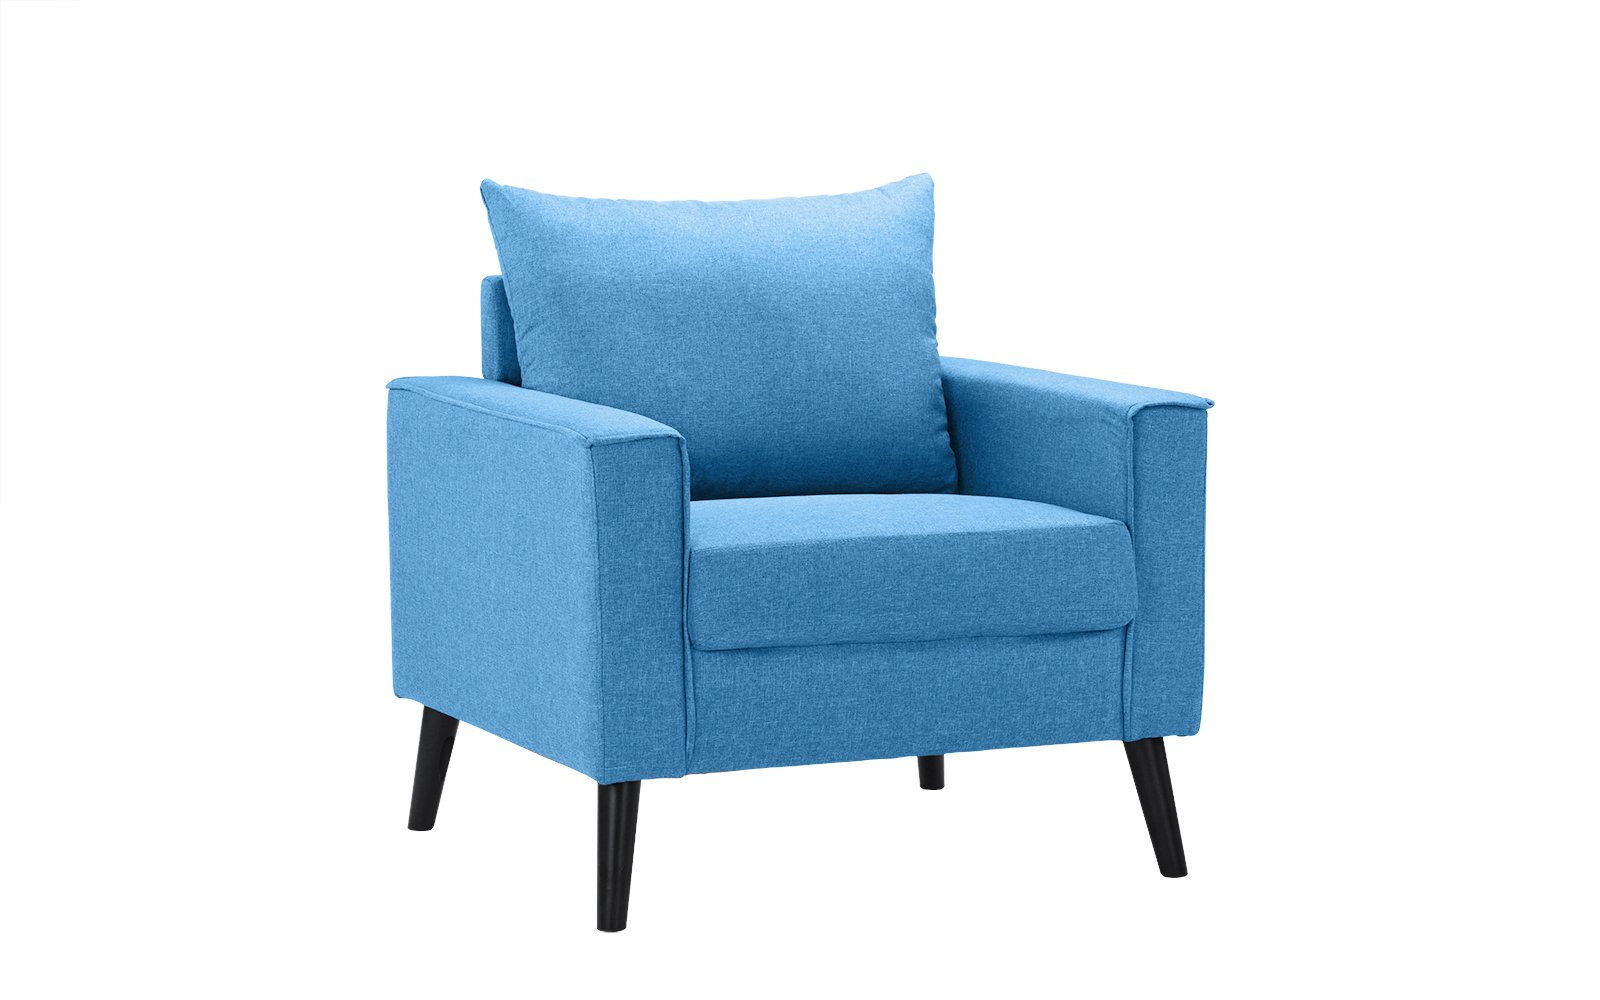 Mid-Century Modern Linen Fabric Armchair Living Room Accent Chair (Sky Blue) - Mid century modern linen fabric wide armchair, perfect as an accent living room piece or a reading nook Features hand picked linen fabric upholstery and tall dark wooden legs with comfortable back and seat cushion Stitching around the frame is exposed giving this furniture piece a touch of modernism - living-room-furniture, living-room, accent-chairs - 617Ef7O7trL -